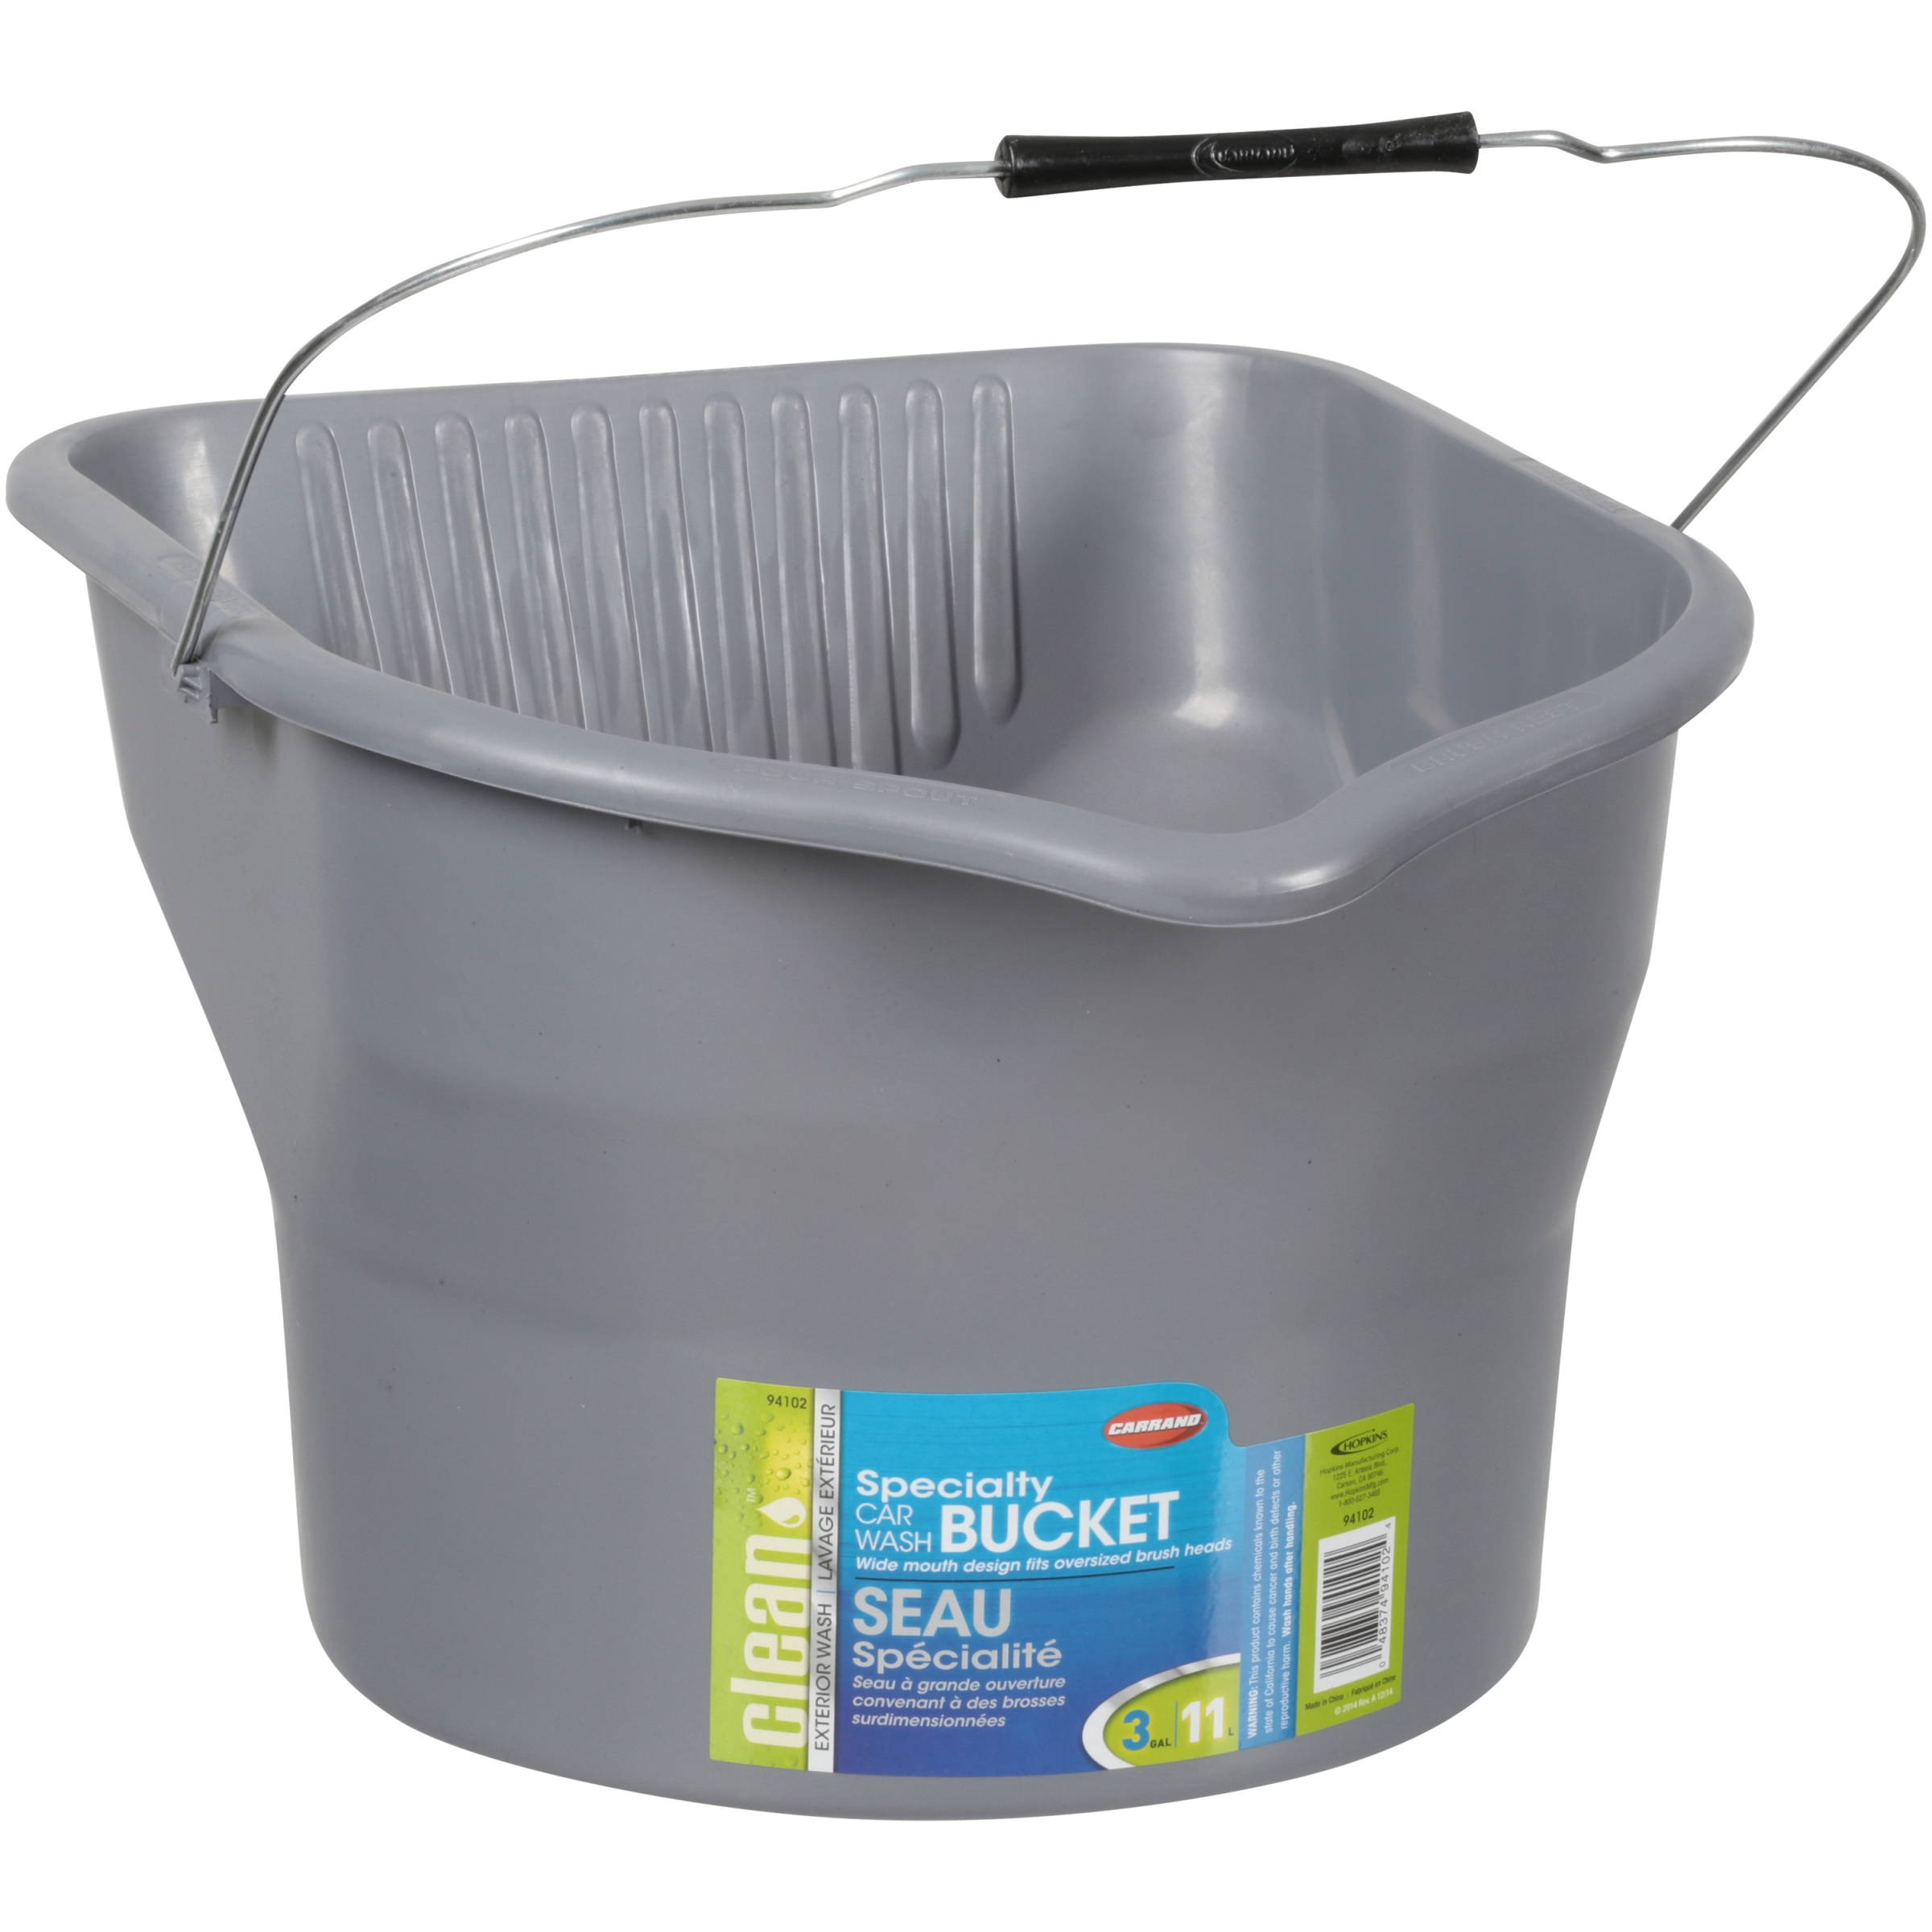 Carrand's 3 Gallon Specialty Car Wash Bucket